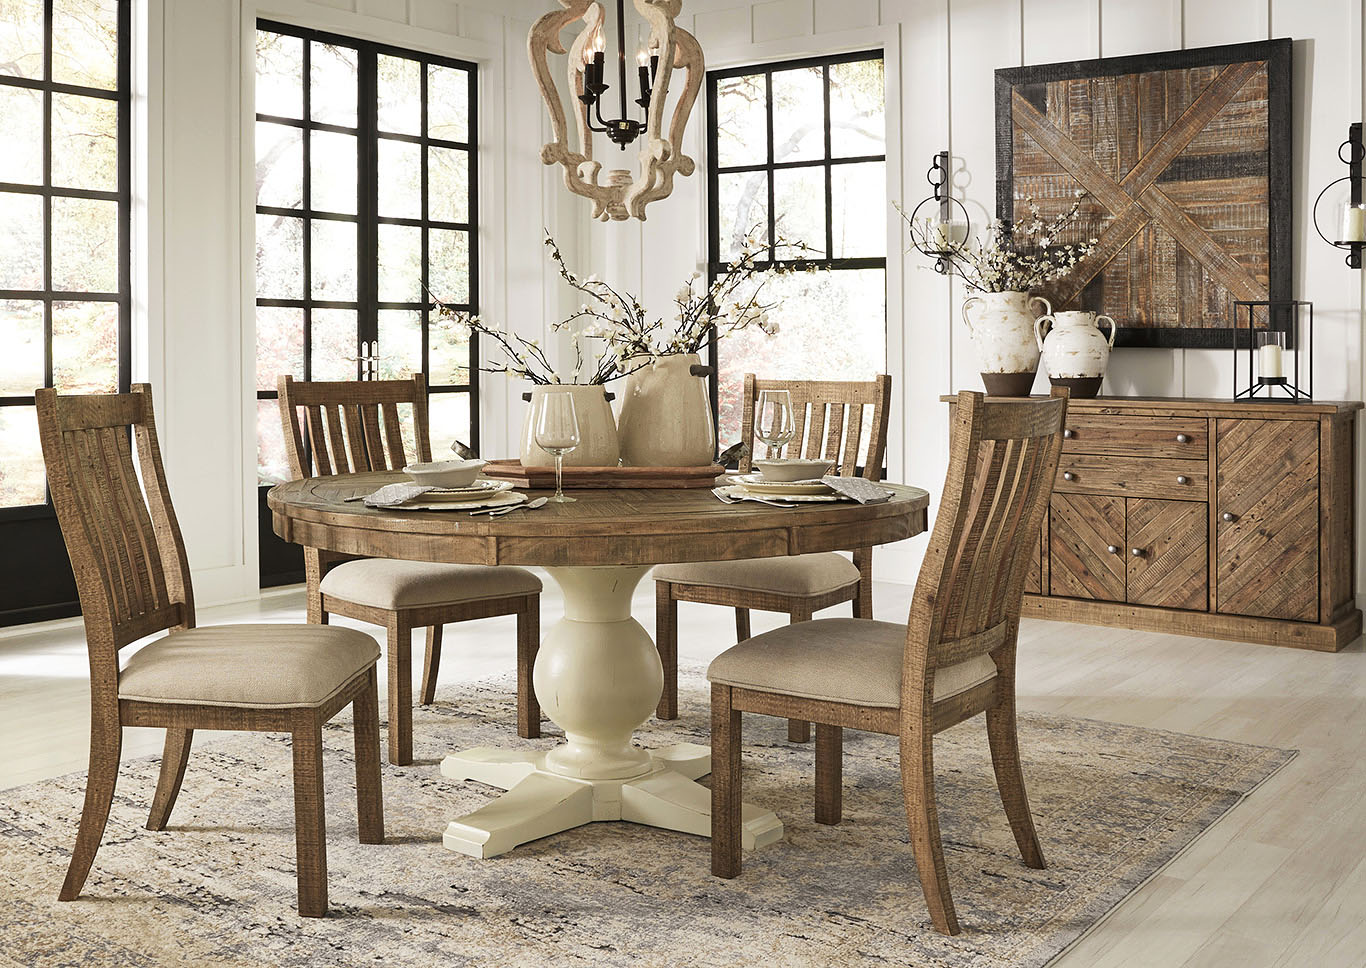 Picture of: Grindleburg Round Dining Table W 4 Brown Side Chairs Ivan Smith